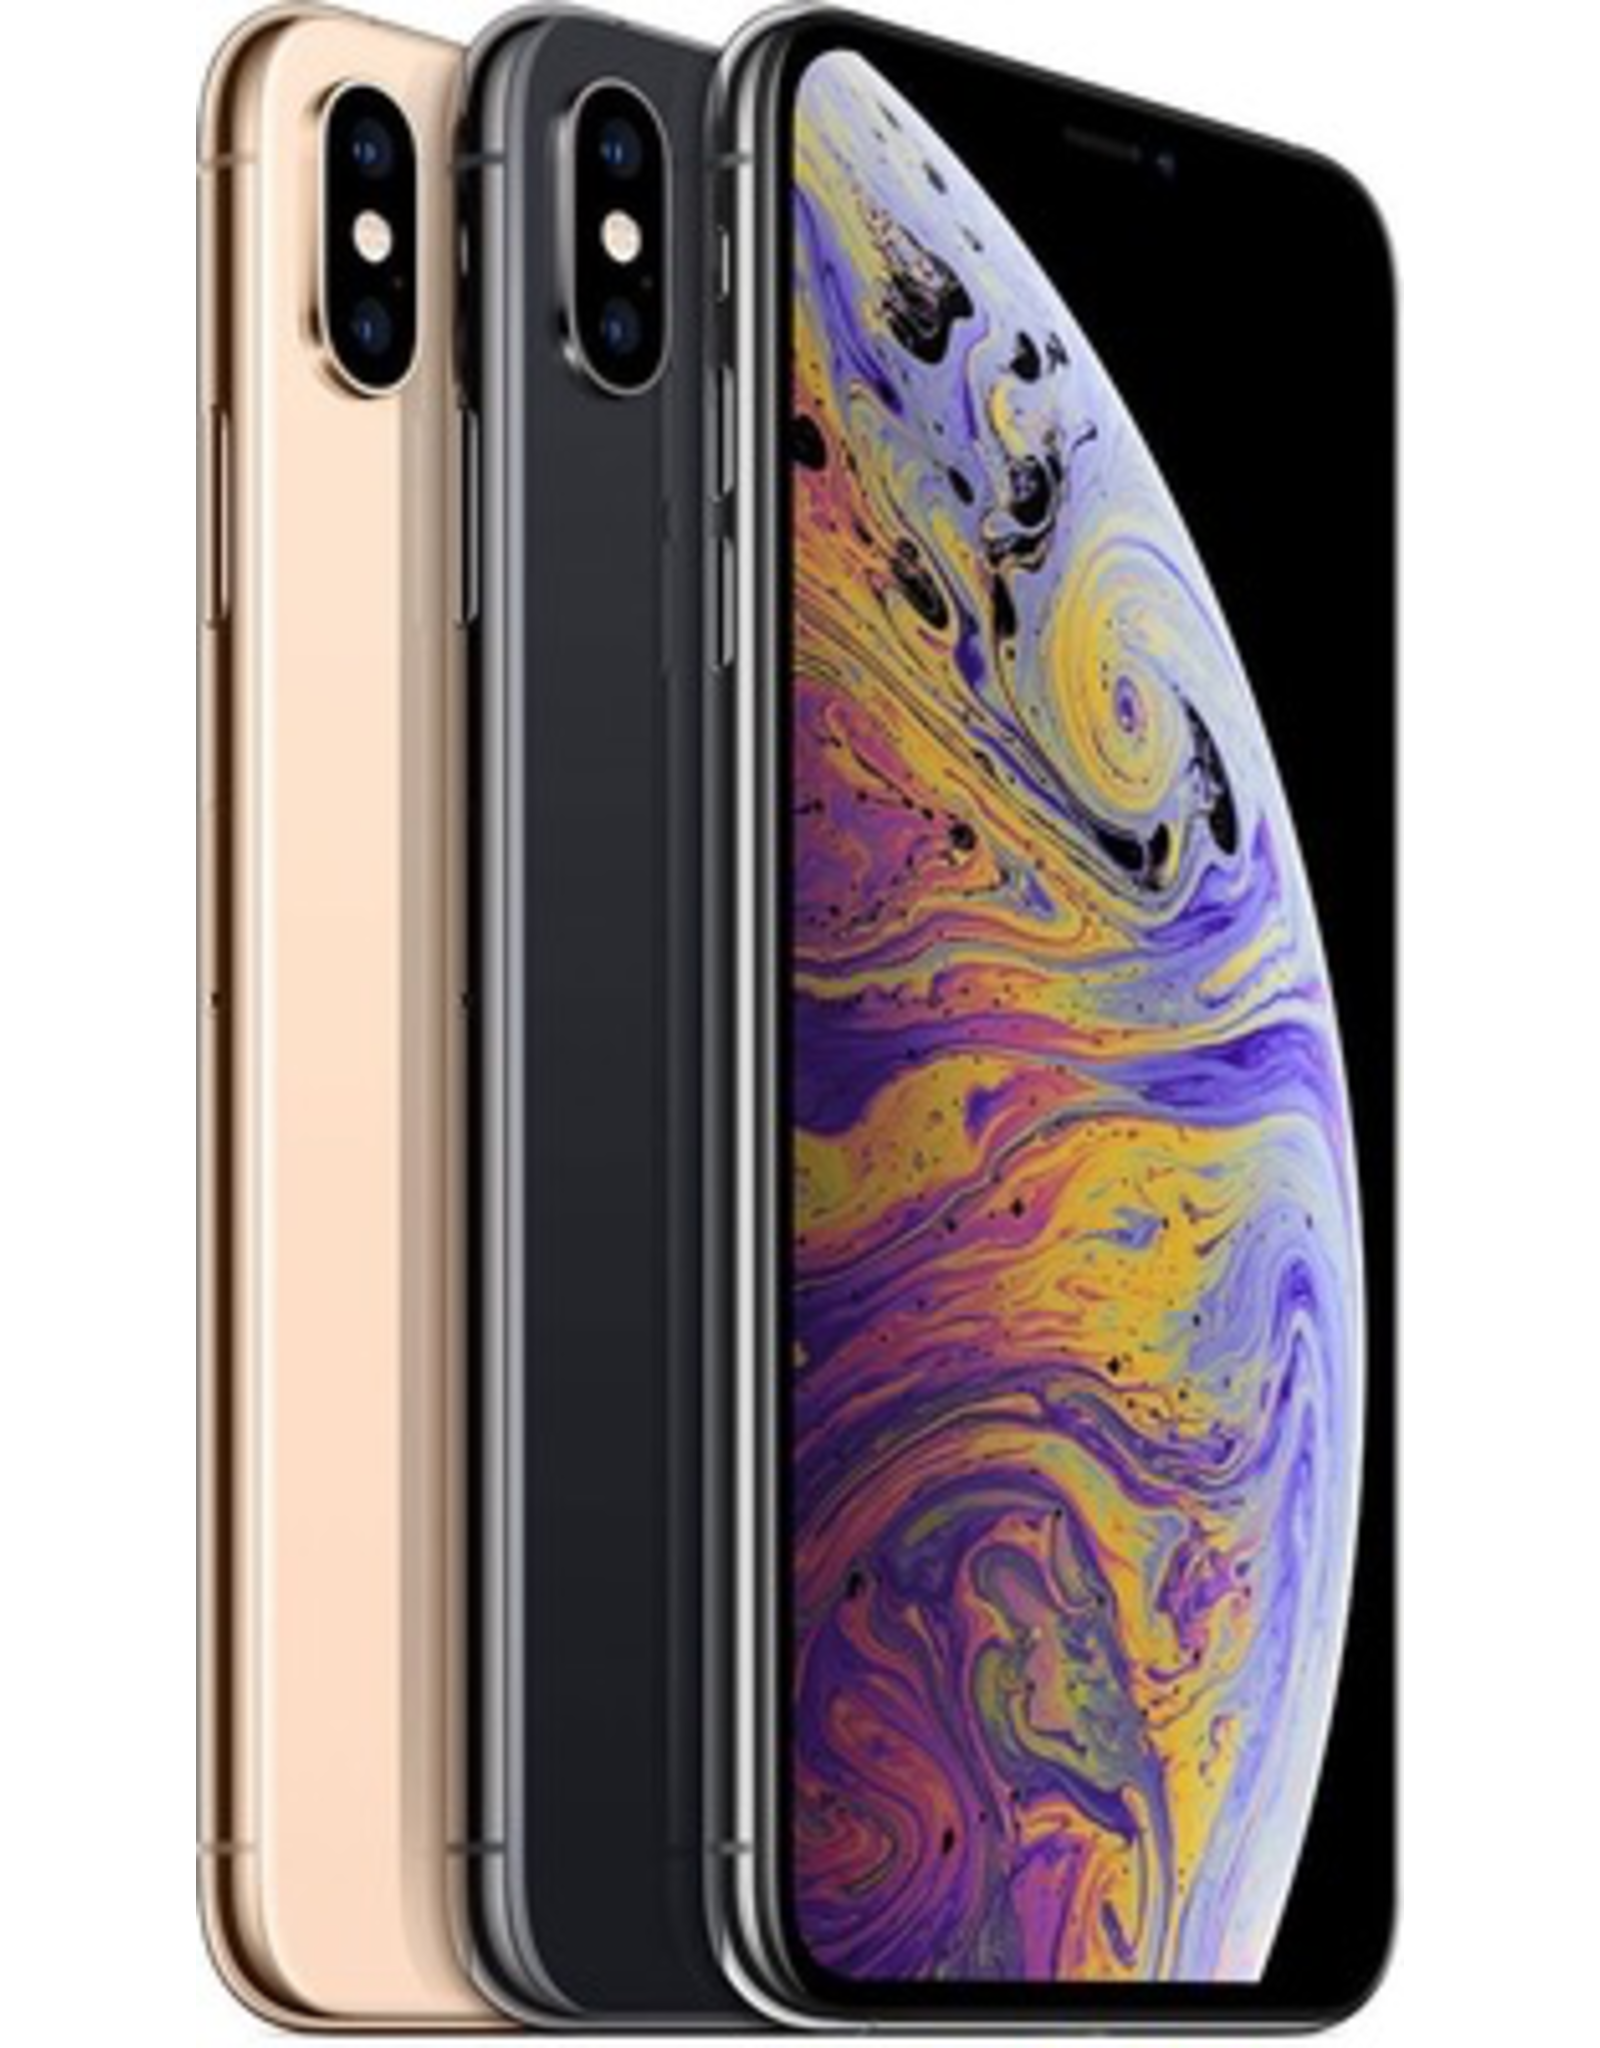 Apple iPhone XS Max,NA,64GB,Gold - 30 Day Exchange